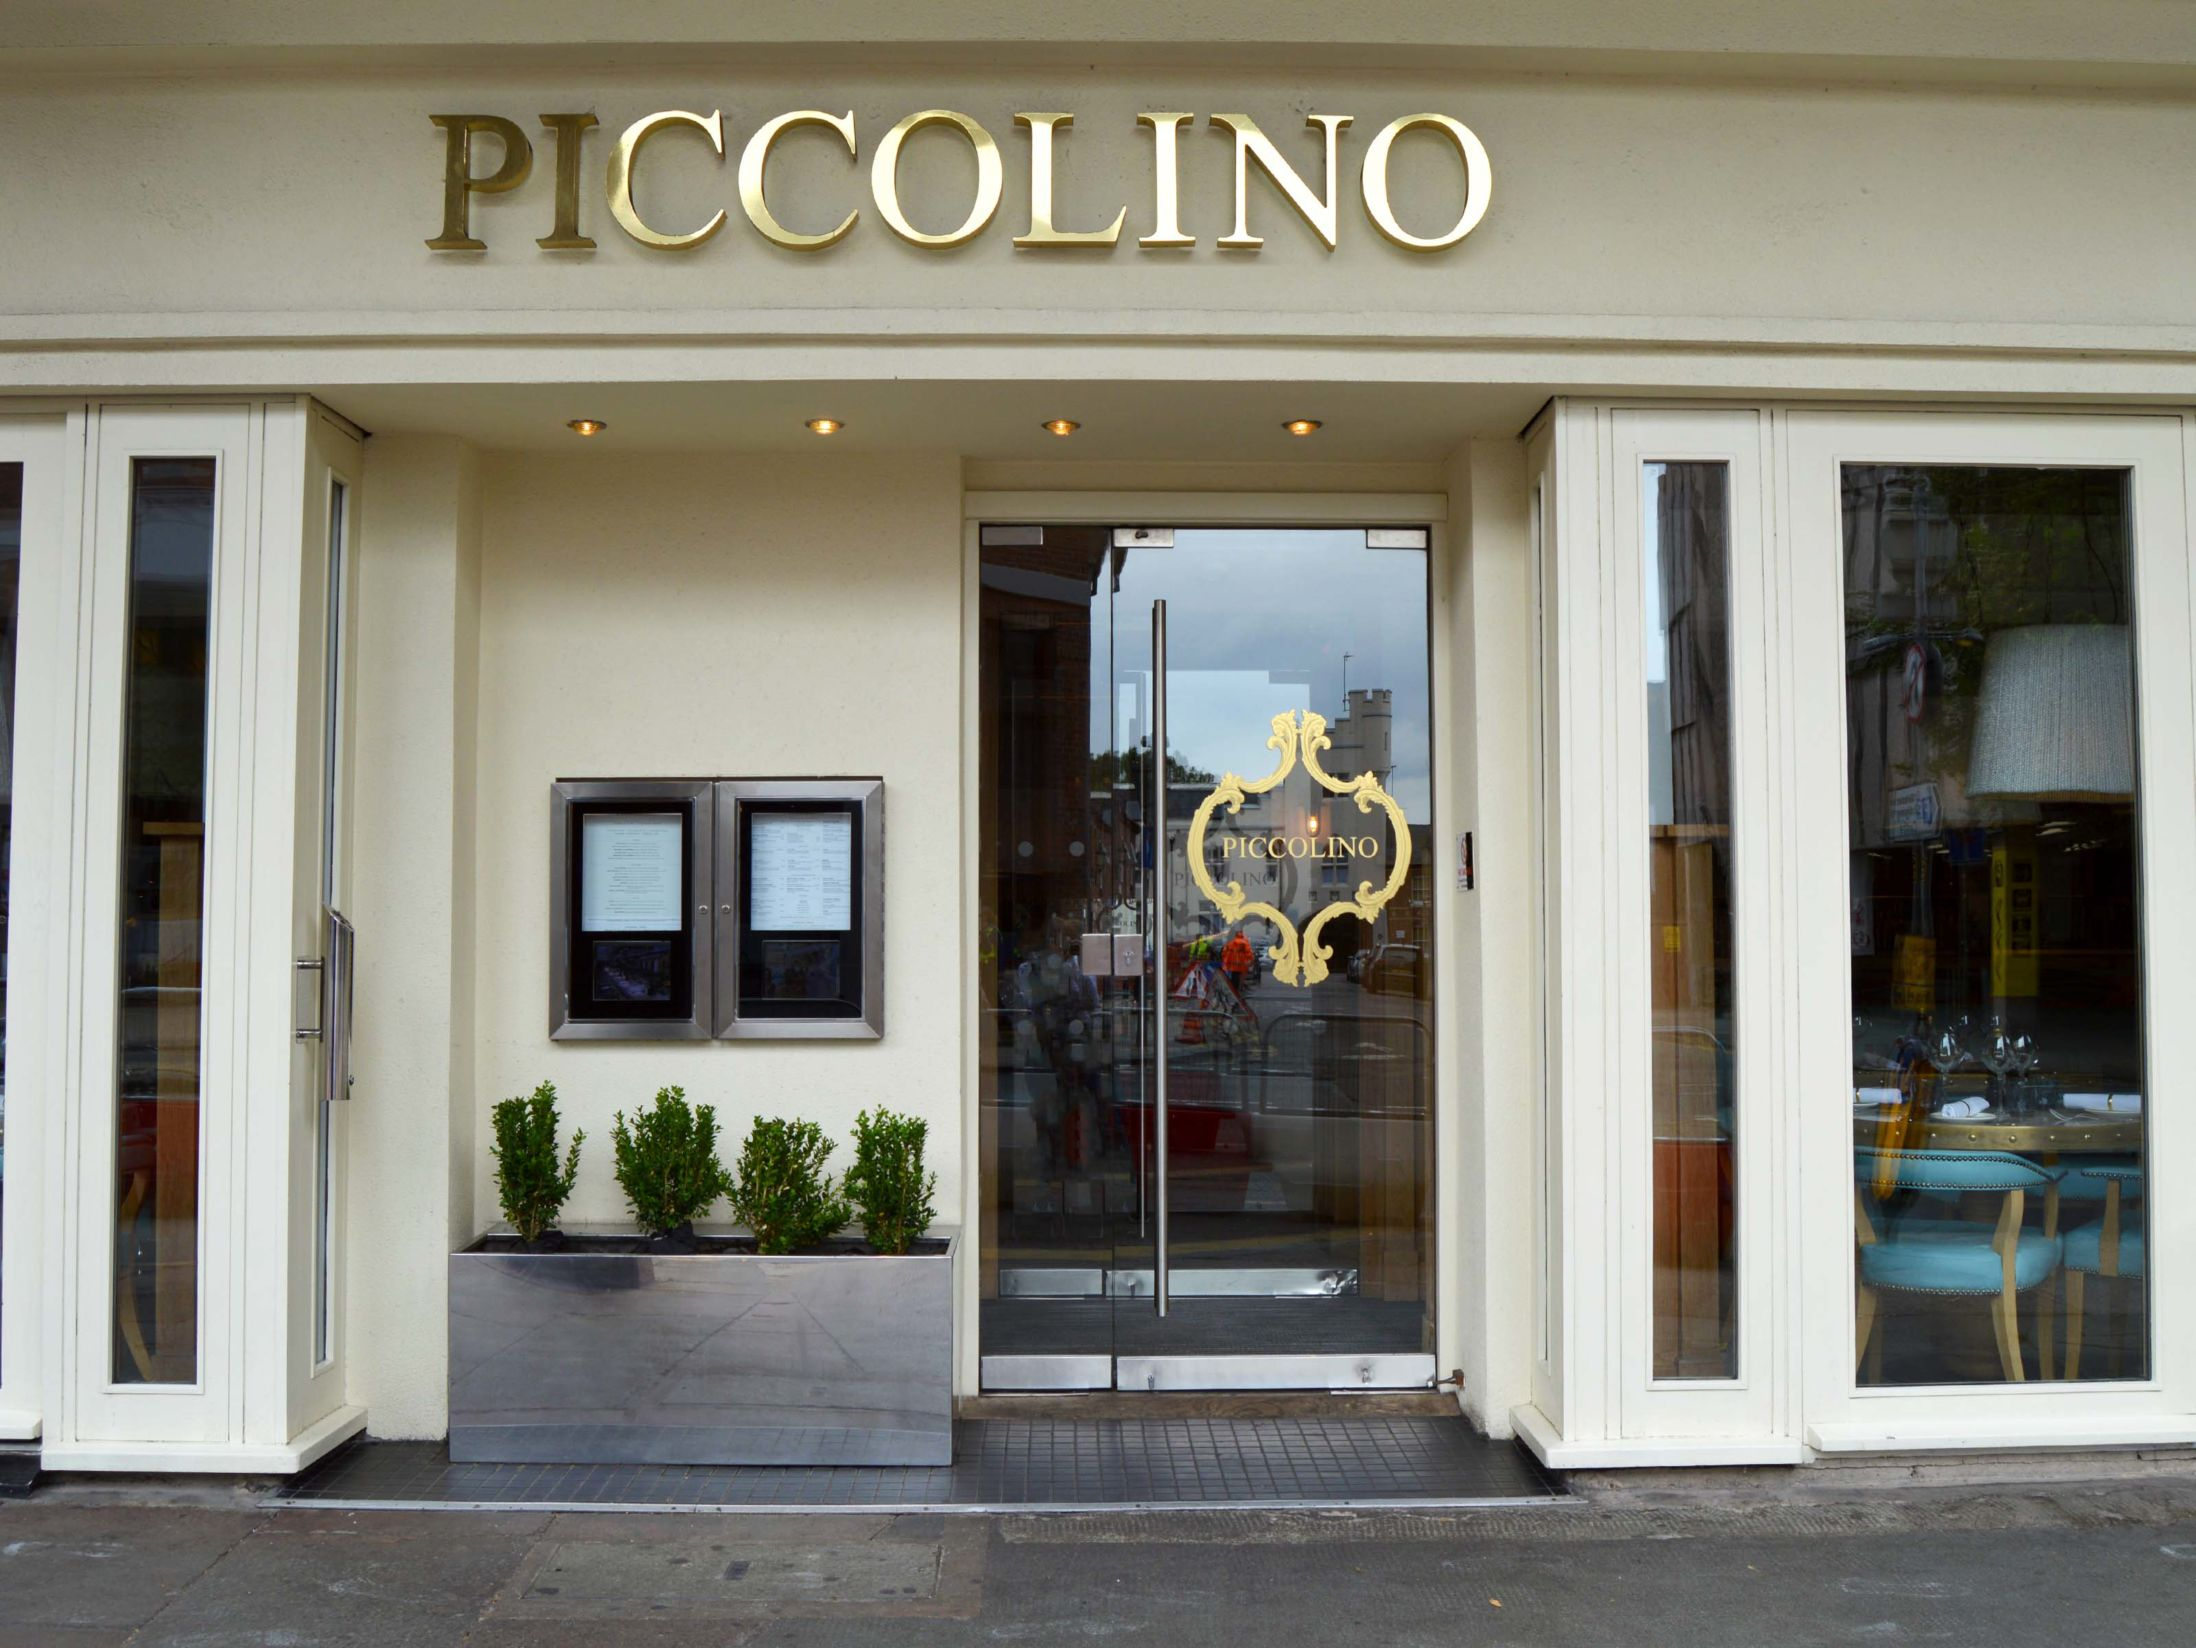 Vegan Restaurants in Chester - Piccolino